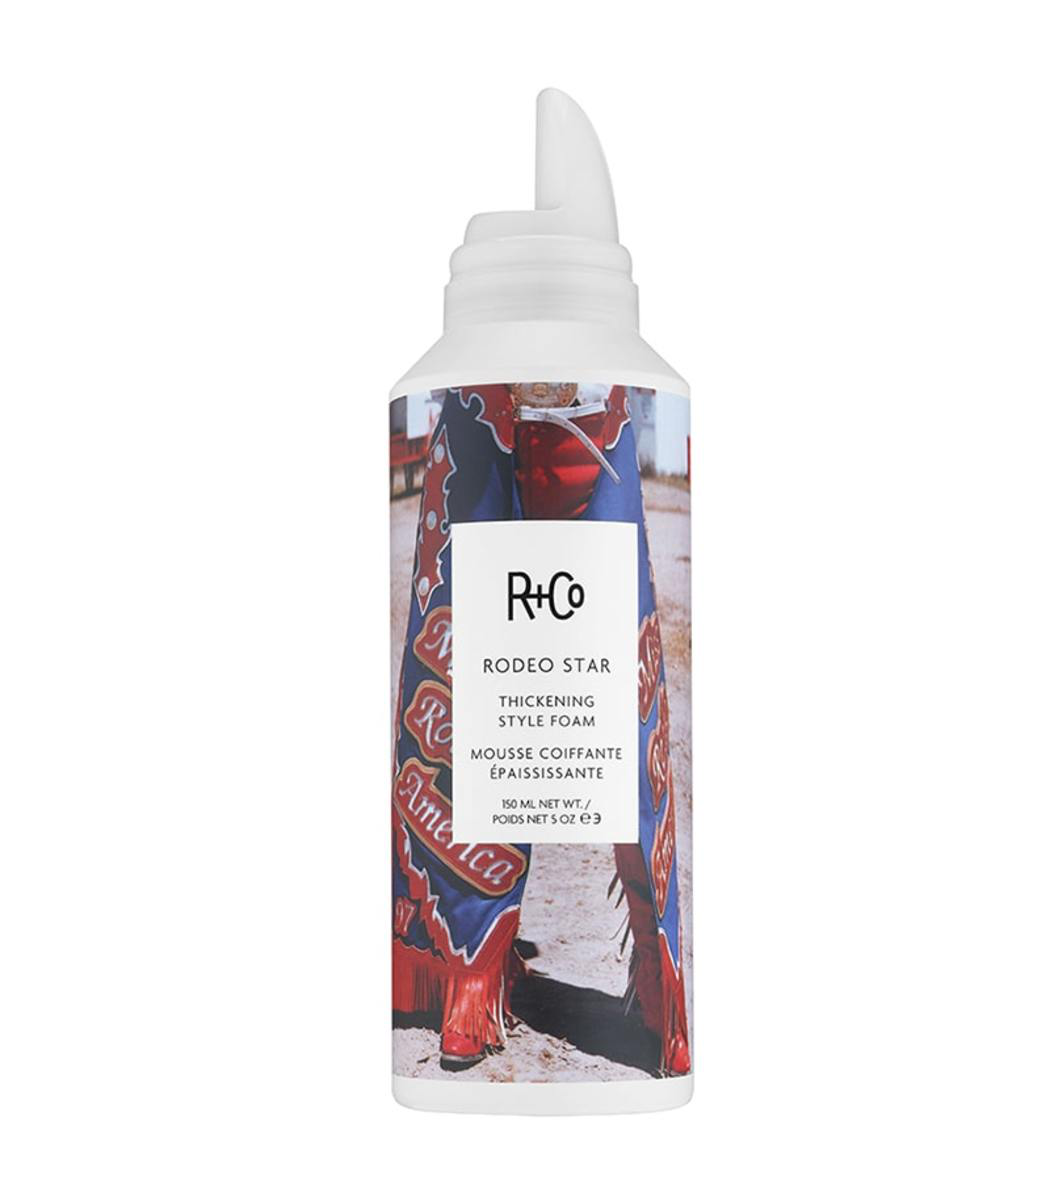 R + Co Roded Star Thickening Style Foam  5 Oz. In N/A